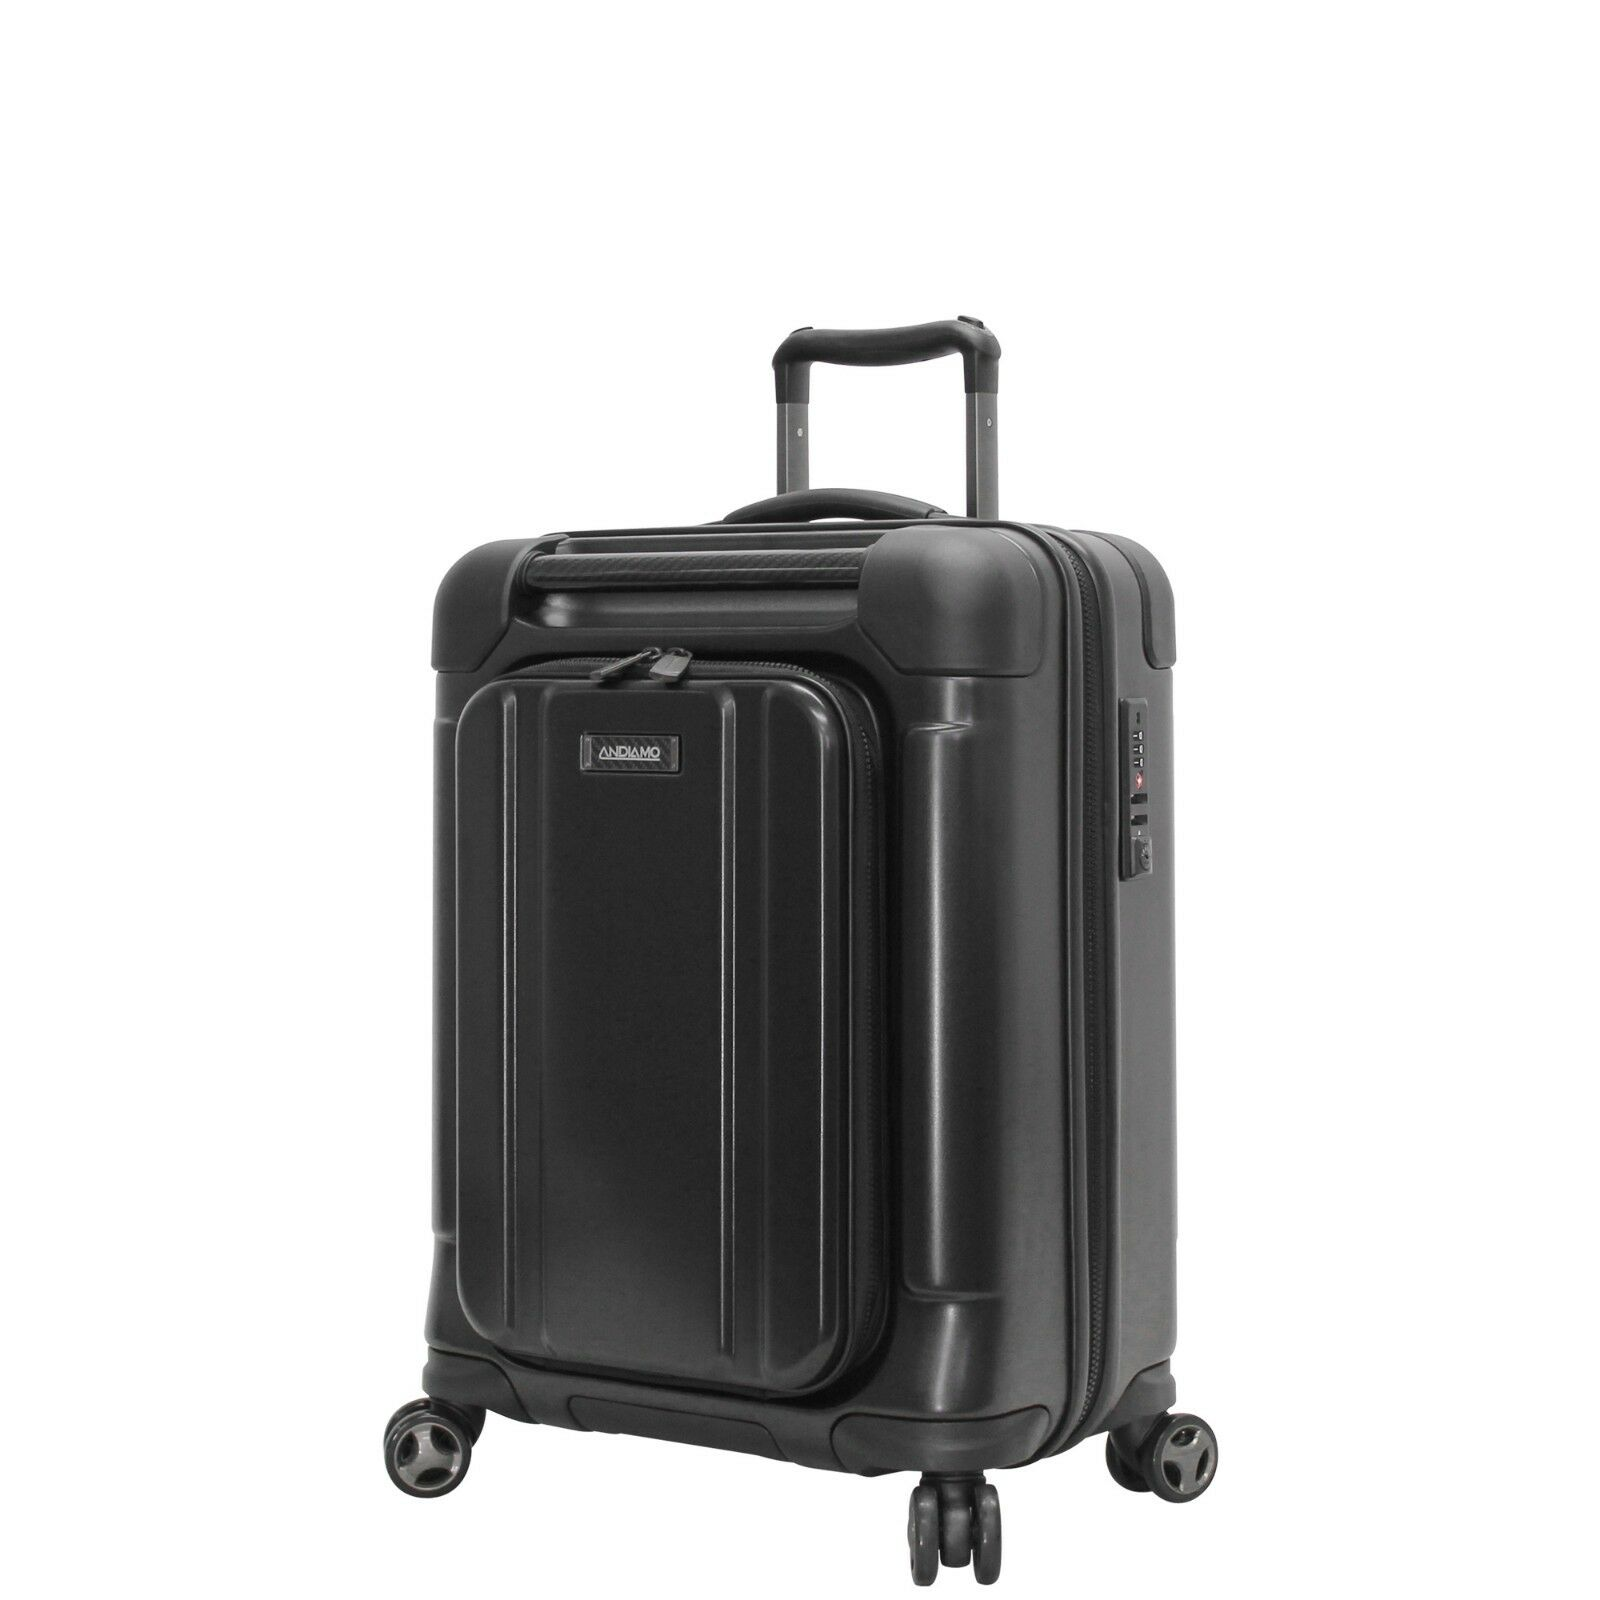 "NEW Andiamo Pantera 20"" Hard Cas Carry-On Luggage With Spinn"